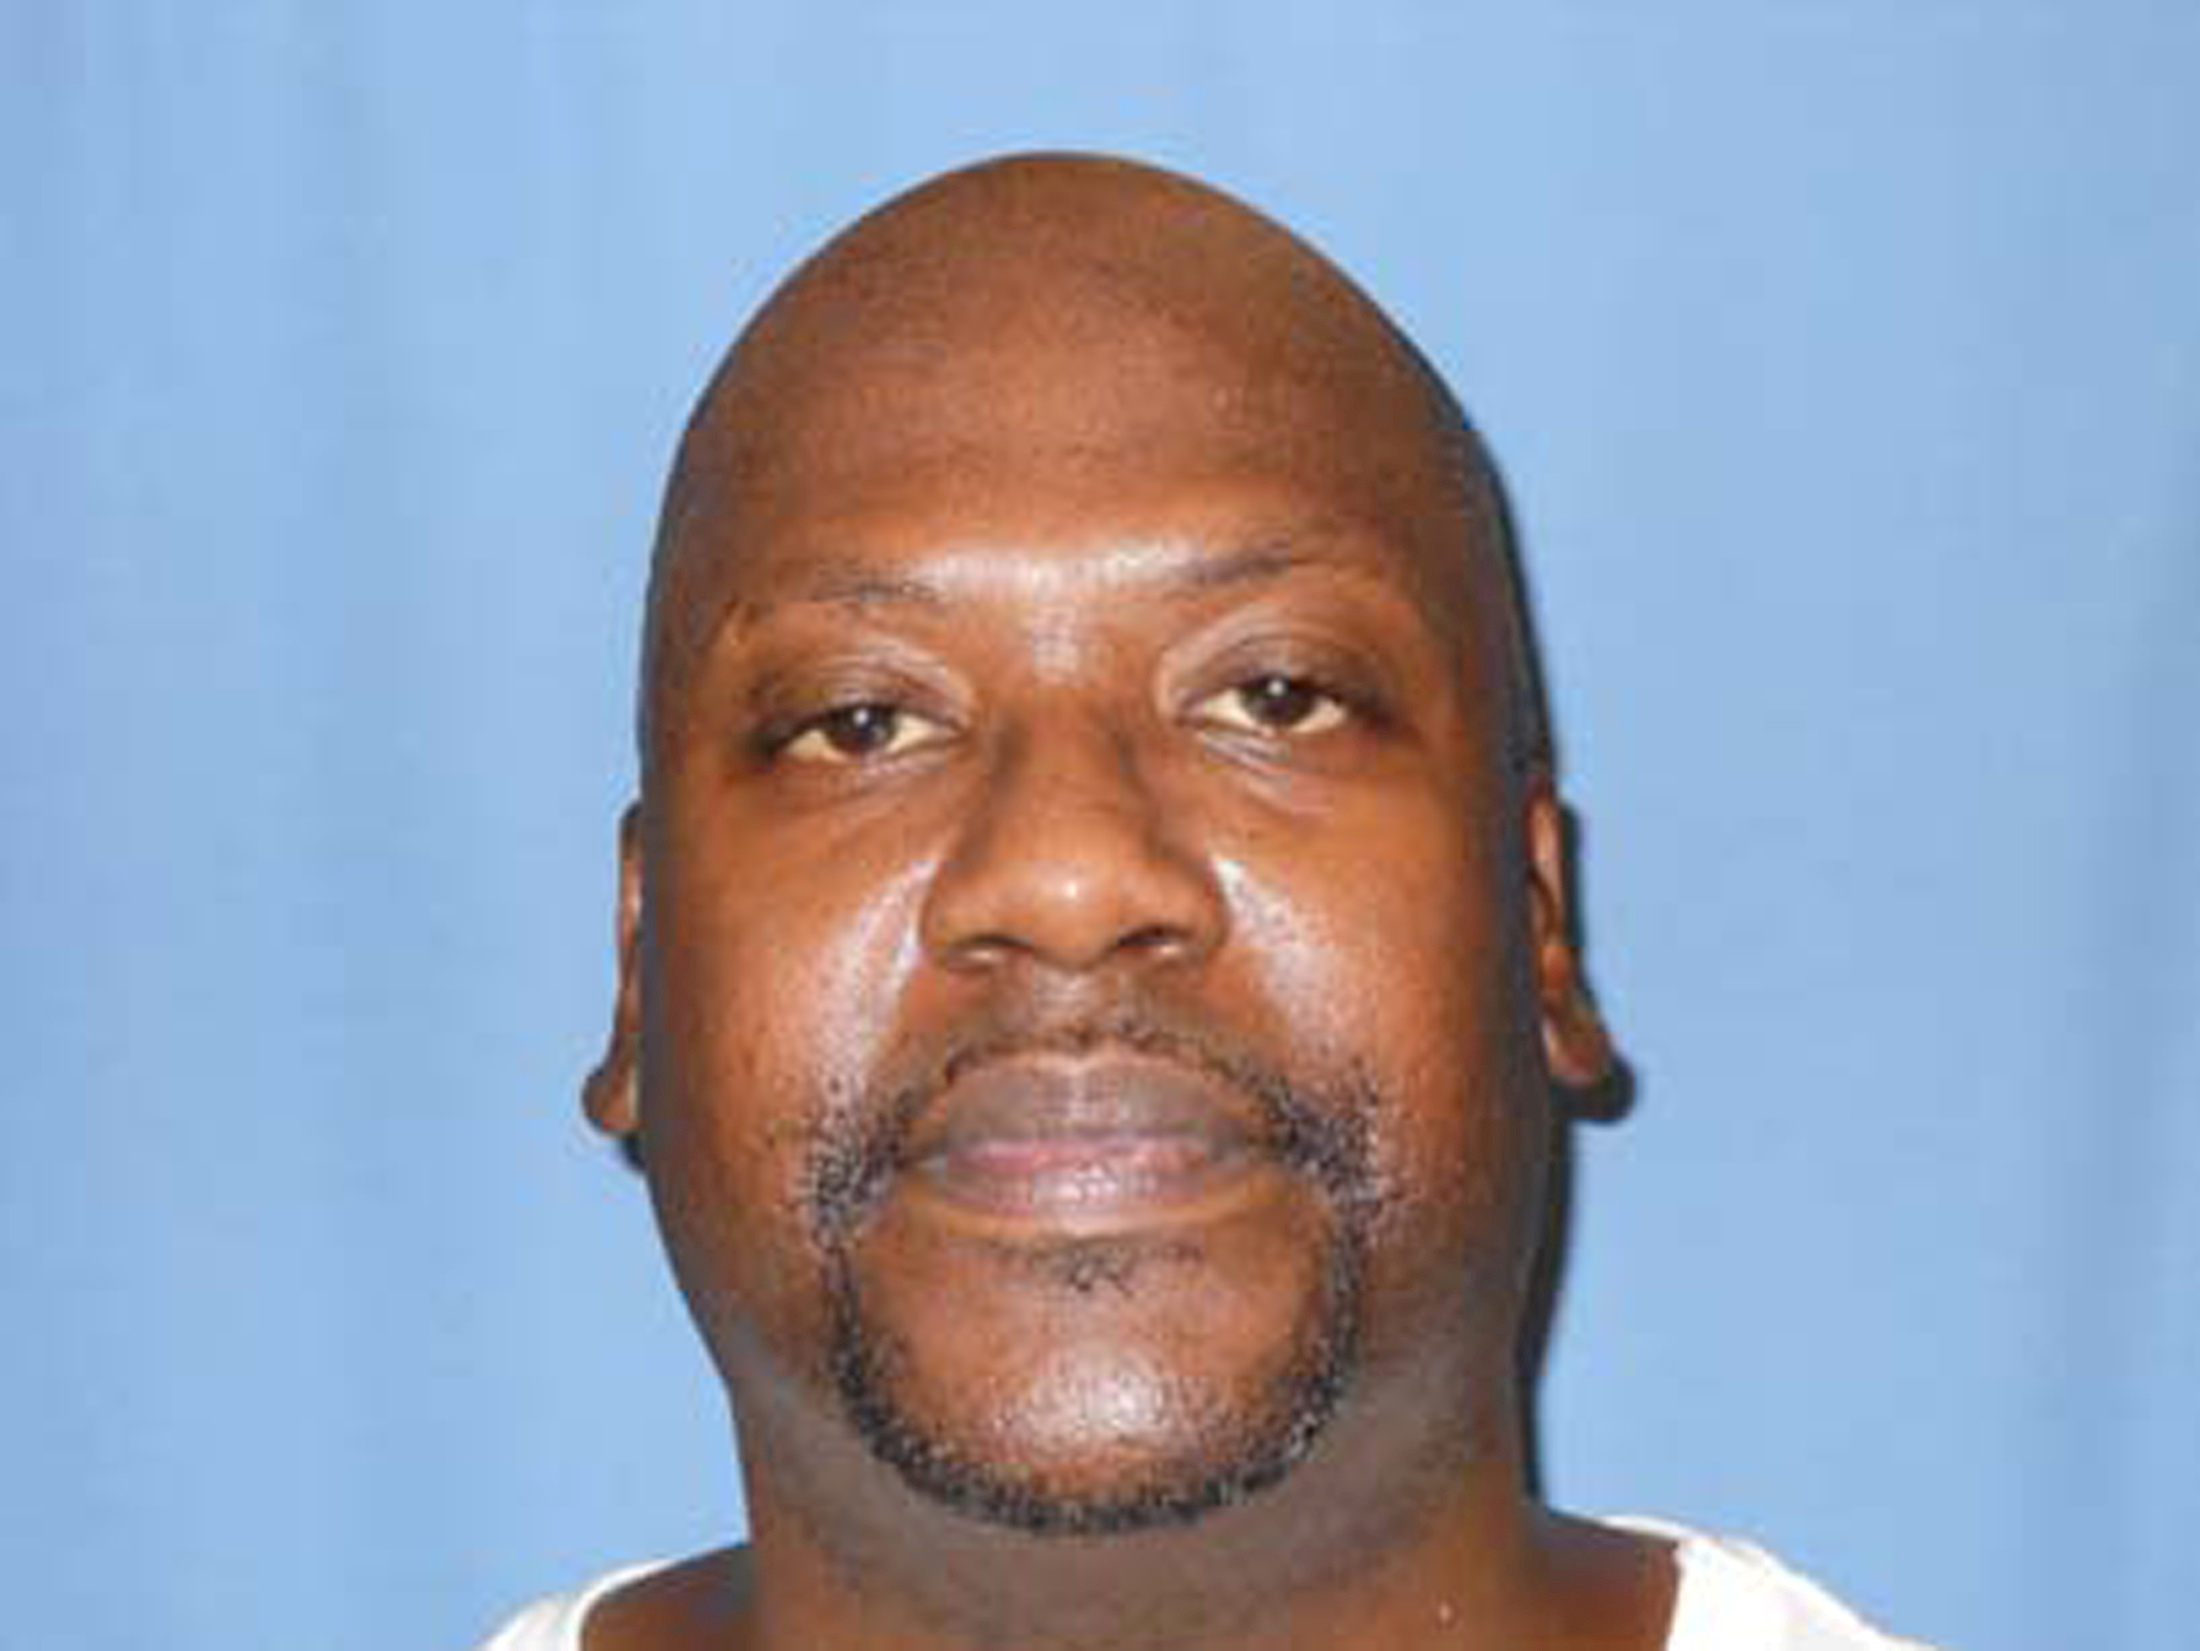 Death row inmate Curtis Flowers. Courtesy Mississippi Department of Corrections/via REUTERS